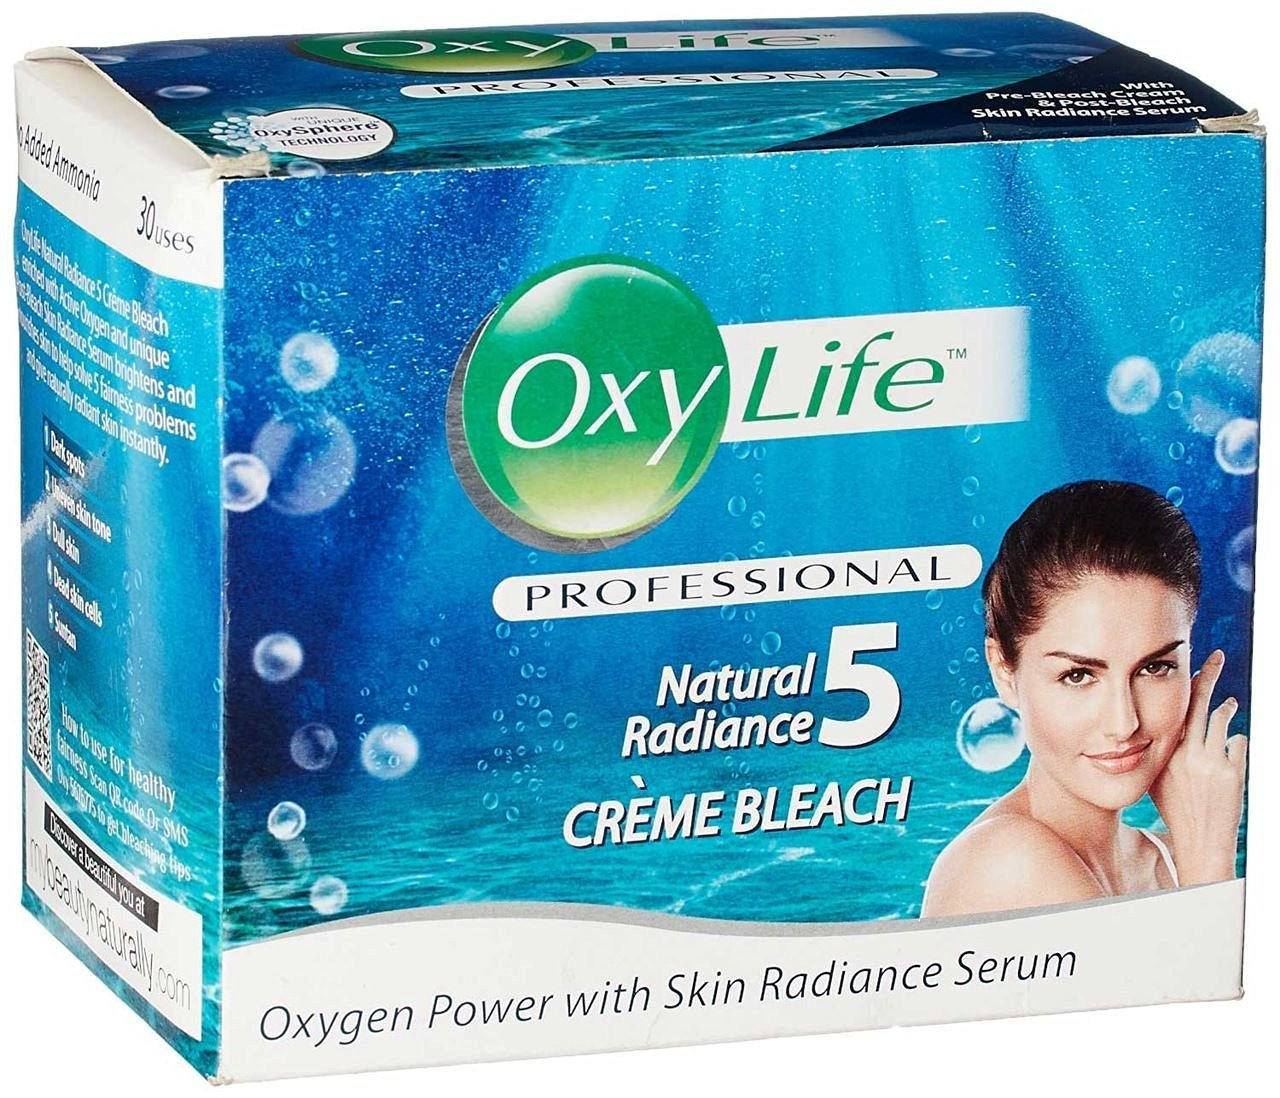 3 x 27 gm each Dabur Oxylife Natural Radiance Creme Bleach Oxy Life - 3 uses Pack Facial Bleach for Women anmol collections